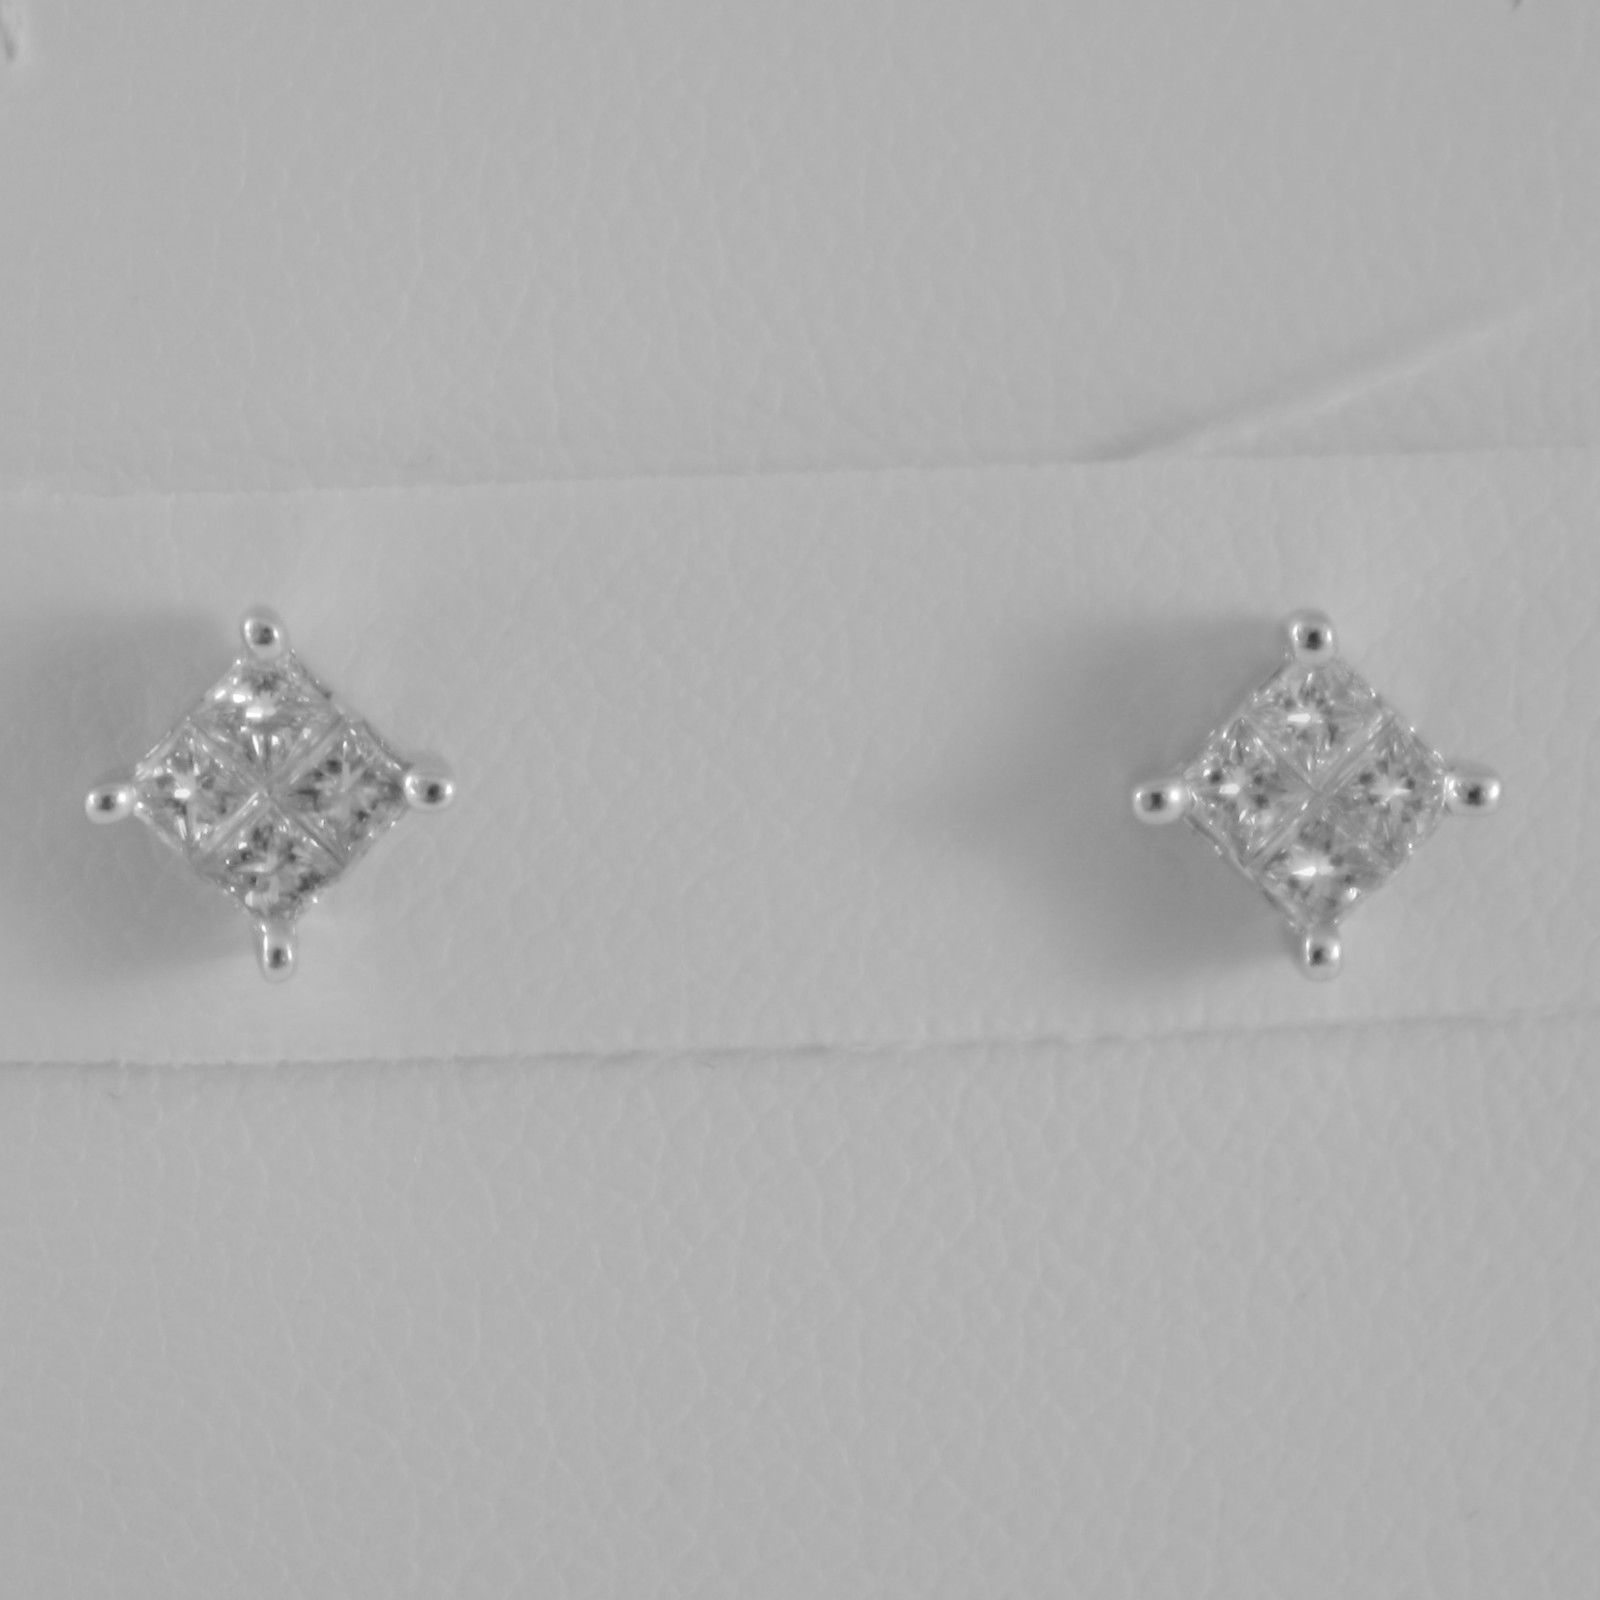 18K WHITE GOLD SQUARE 4.5 mm EARRINGS PRINCESS DIAMOND 0.31 CT, MADE IN ITALY